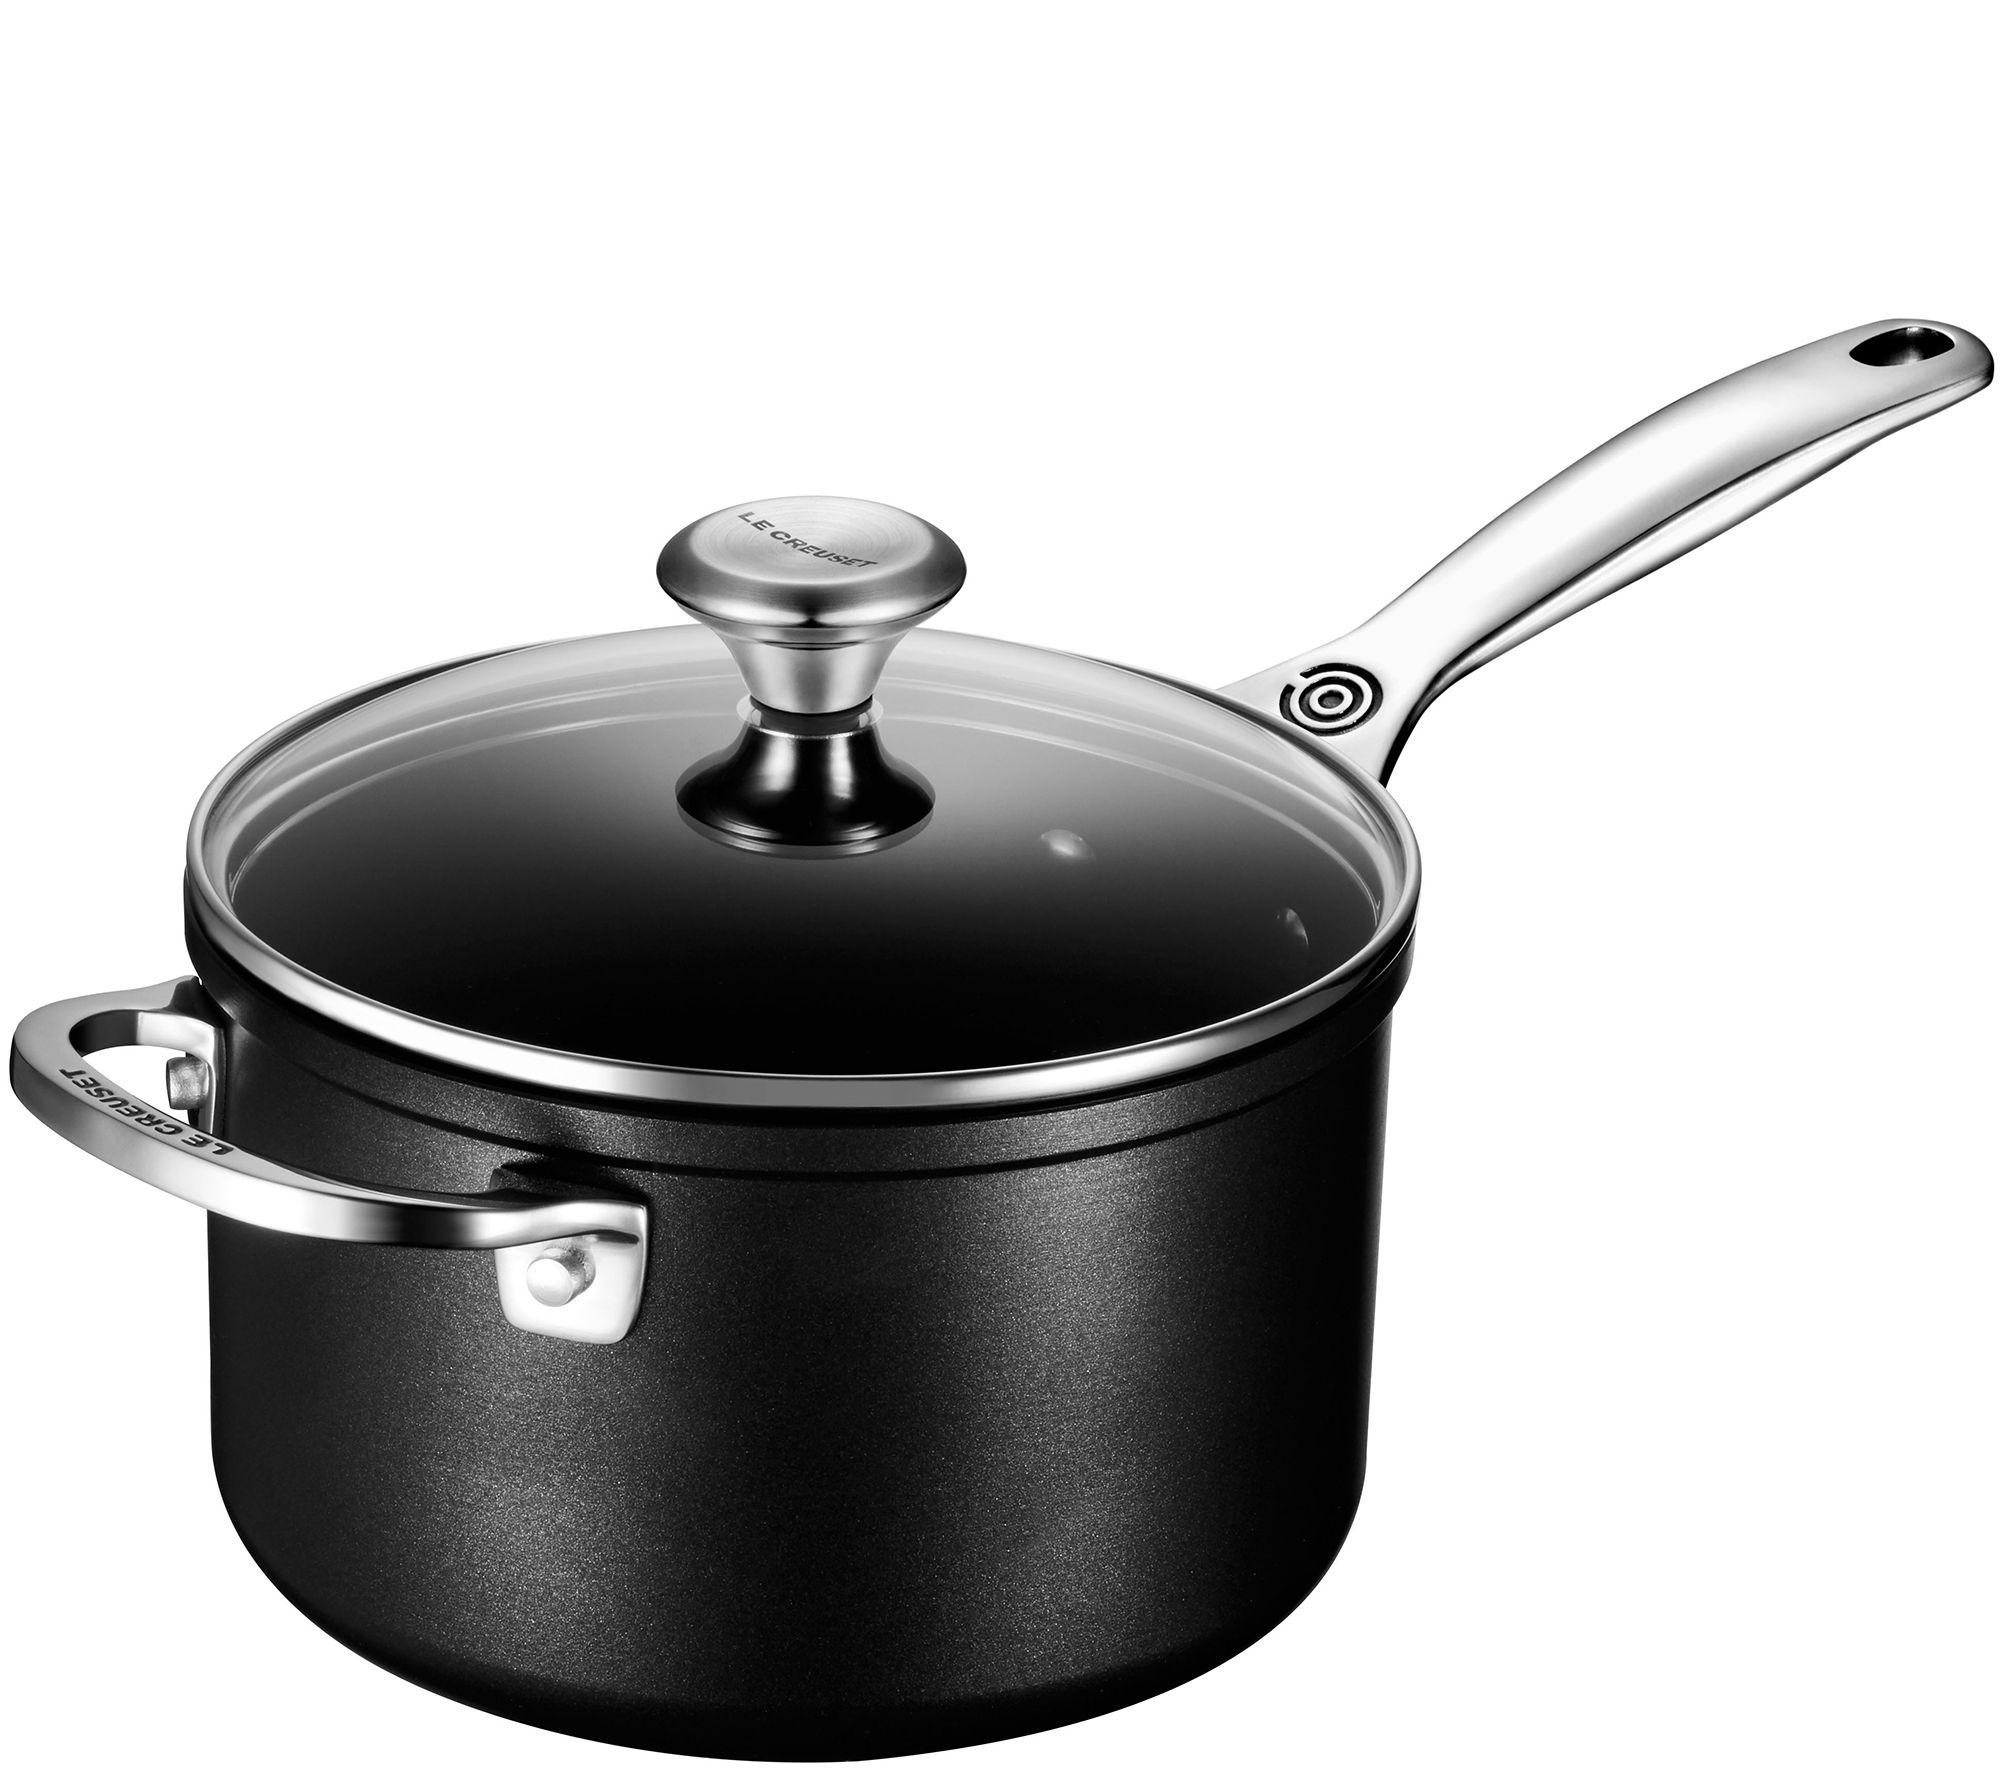 le creuset nonstick 3 qt saucepan with glass lid. Black Bedroom Furniture Sets. Home Design Ideas